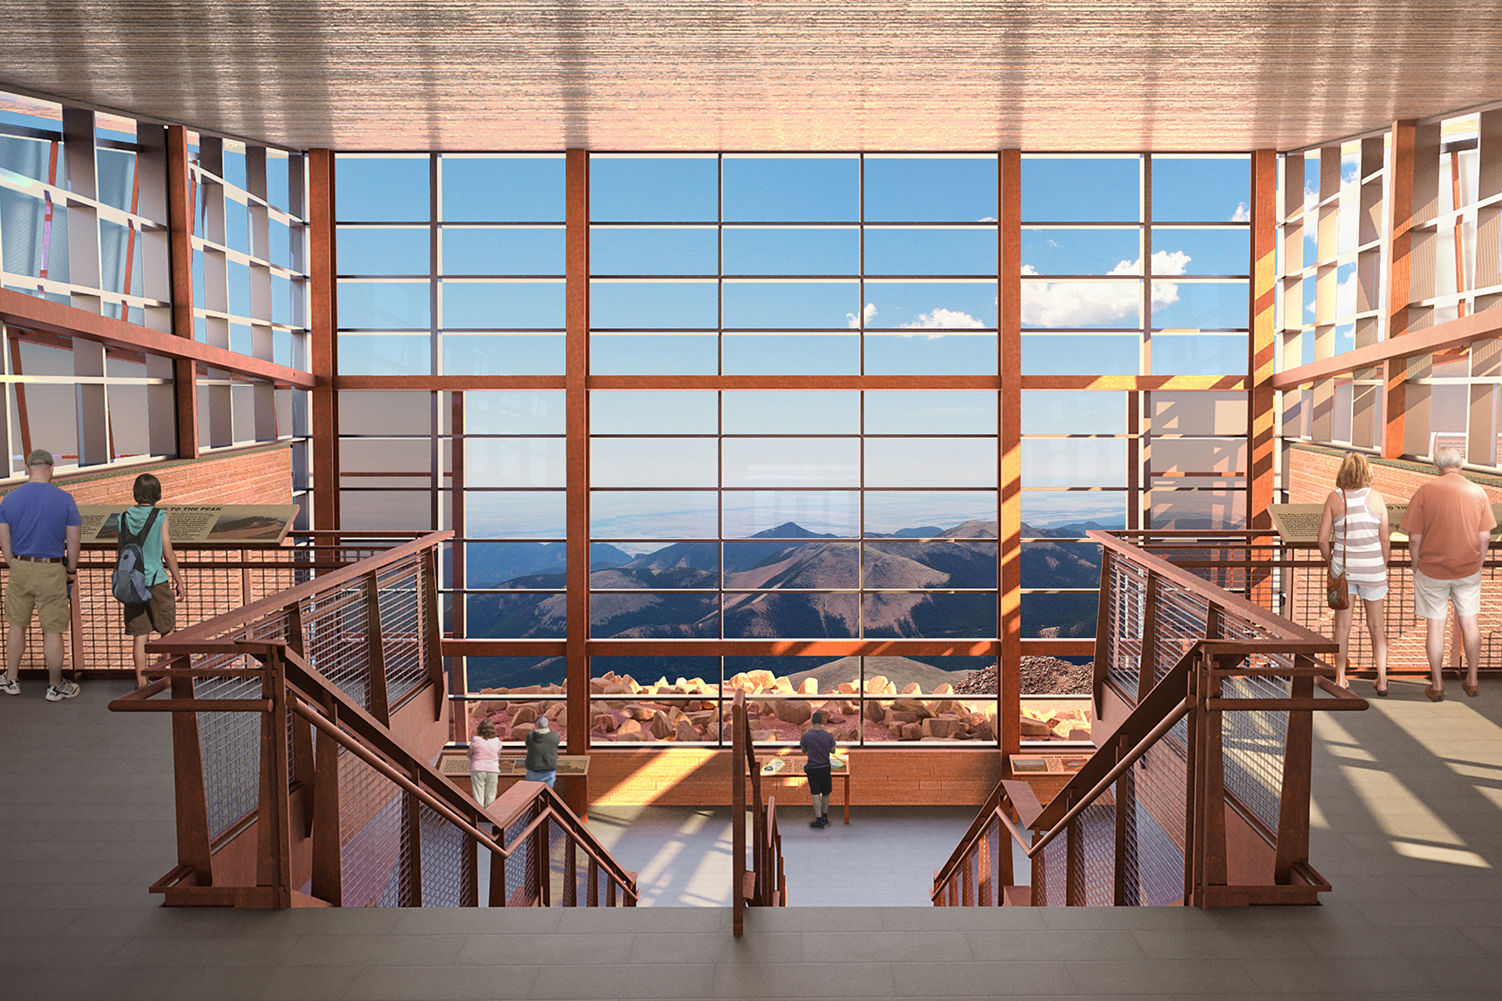 The boundless sky and perfectly framed views of Mt. Rosa draw visitors to the main floor of the Pikes Peak Visitor Center where they can access exhibits, dining, a gift shop, and restrooms.